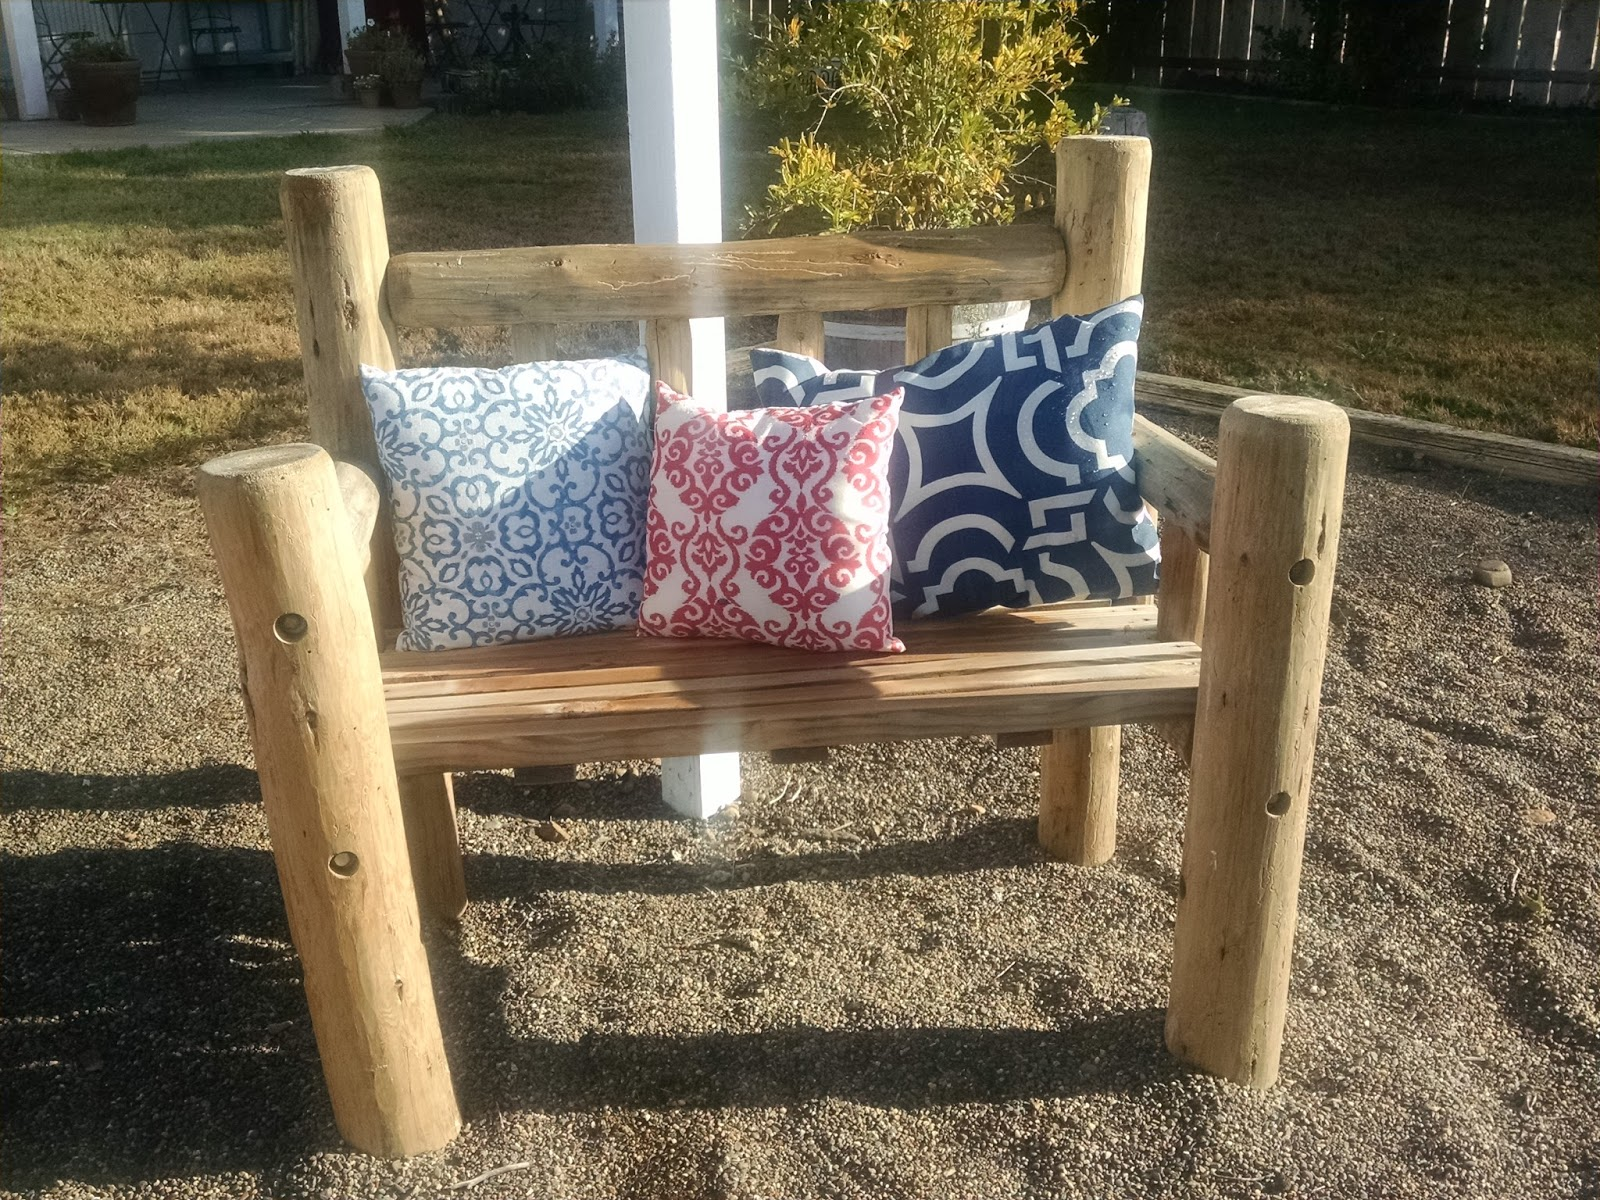 Swell Living A Cottage Life From Log Bunk Bed To Rustic Garden Ncnpc Chair Design For Home Ncnpcorg